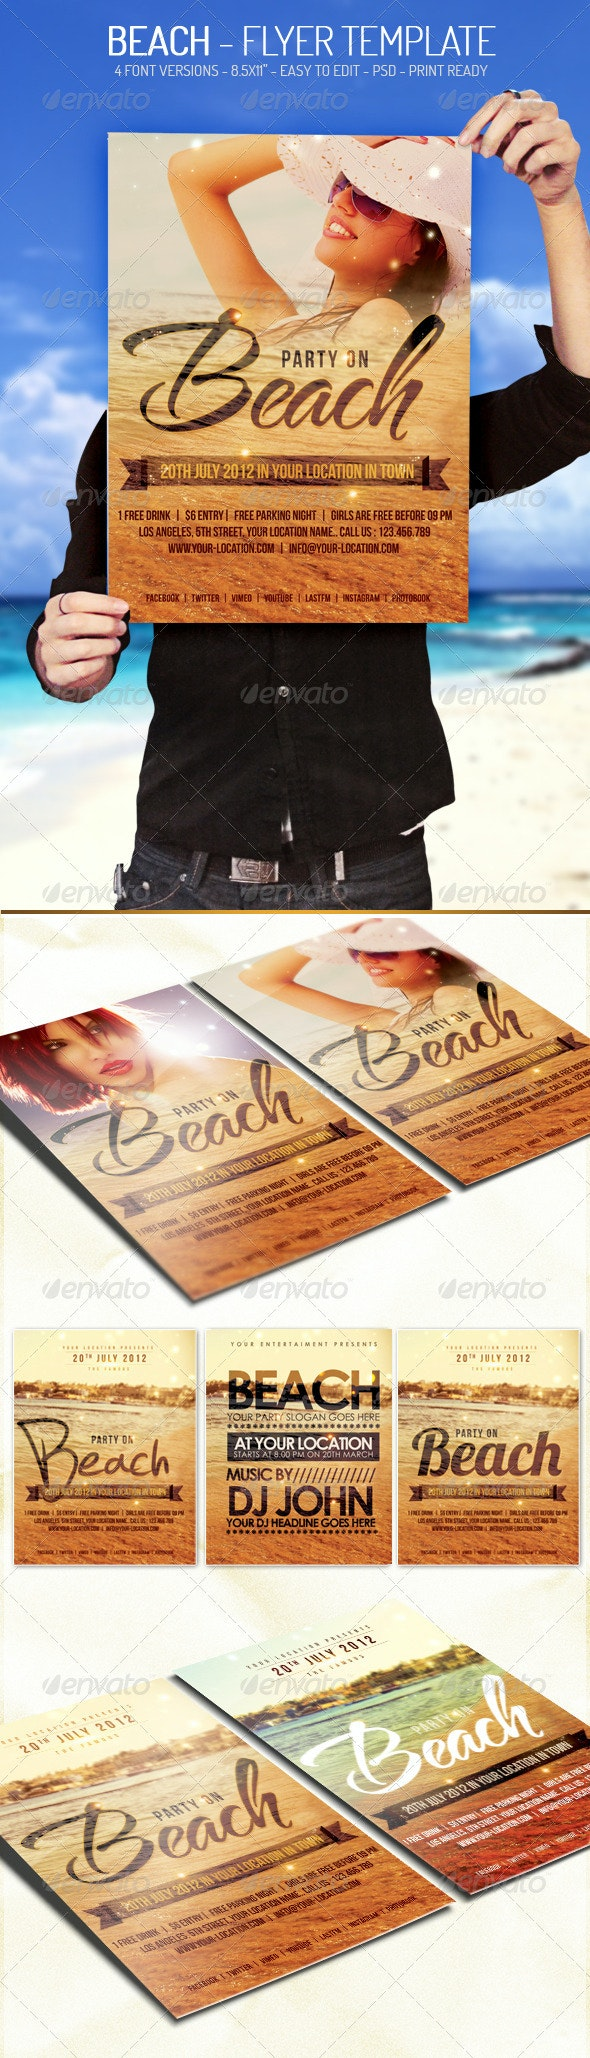 Beach - Flyer Template - Clubs & Parties Events